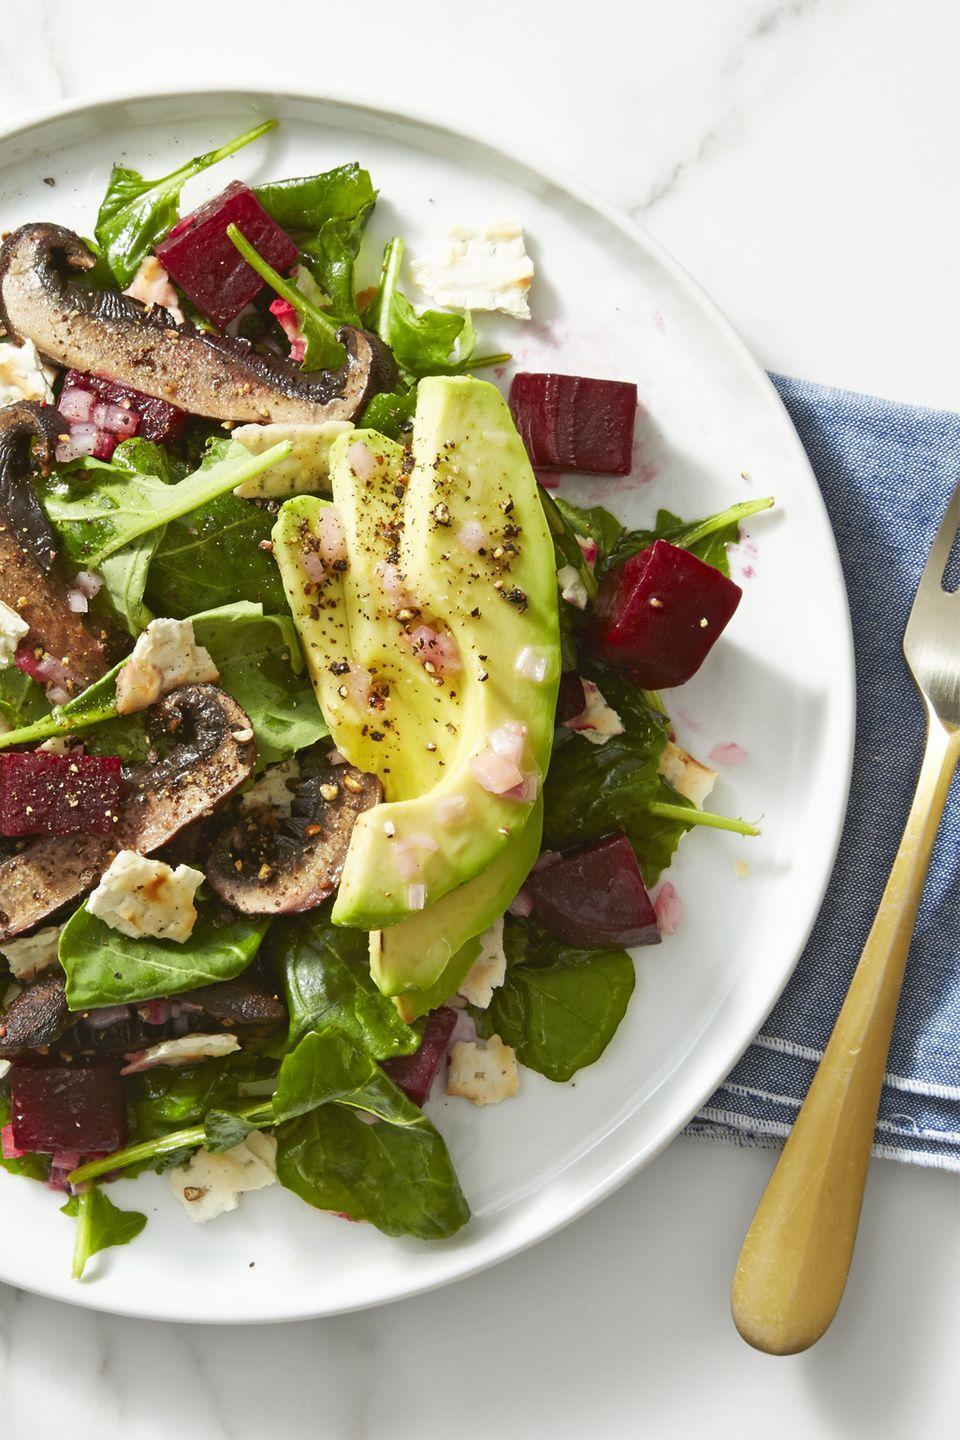 """<p>Pairing tender, flavorful mushrooms with the soft, creamy bite of fresh avocado is a winning combo for any salad. The addition of beets just makes this plate so much more special!</p><p><em><a href=""""https://www.goodhousekeeping.com/food-recipes/a43225/beet-mushroom-avocado-salad-recipe/"""" rel=""""nofollow noopener"""" target=""""_blank"""" data-ylk=""""slk:Get the recipe for Beet, Mushroom and Avocado Salad »"""" class=""""link rapid-noclick-resp"""">Get the recipe for Beet, Mushroom and Avocado Salad »</a></em><br></p><p><strong>RELATED</strong>: <a href=""""https://www.goodhousekeeping.com/food-recipes/healthy/g180/healthy-salads/"""" rel=""""nofollow noopener"""" target=""""_blank"""" data-ylk=""""slk:37 Delicious Healthy Salads That Are Fresh and Filling"""" class=""""link rapid-noclick-resp"""">37 Delicious Healthy Salads That Are Fresh and Filling</a></p>"""